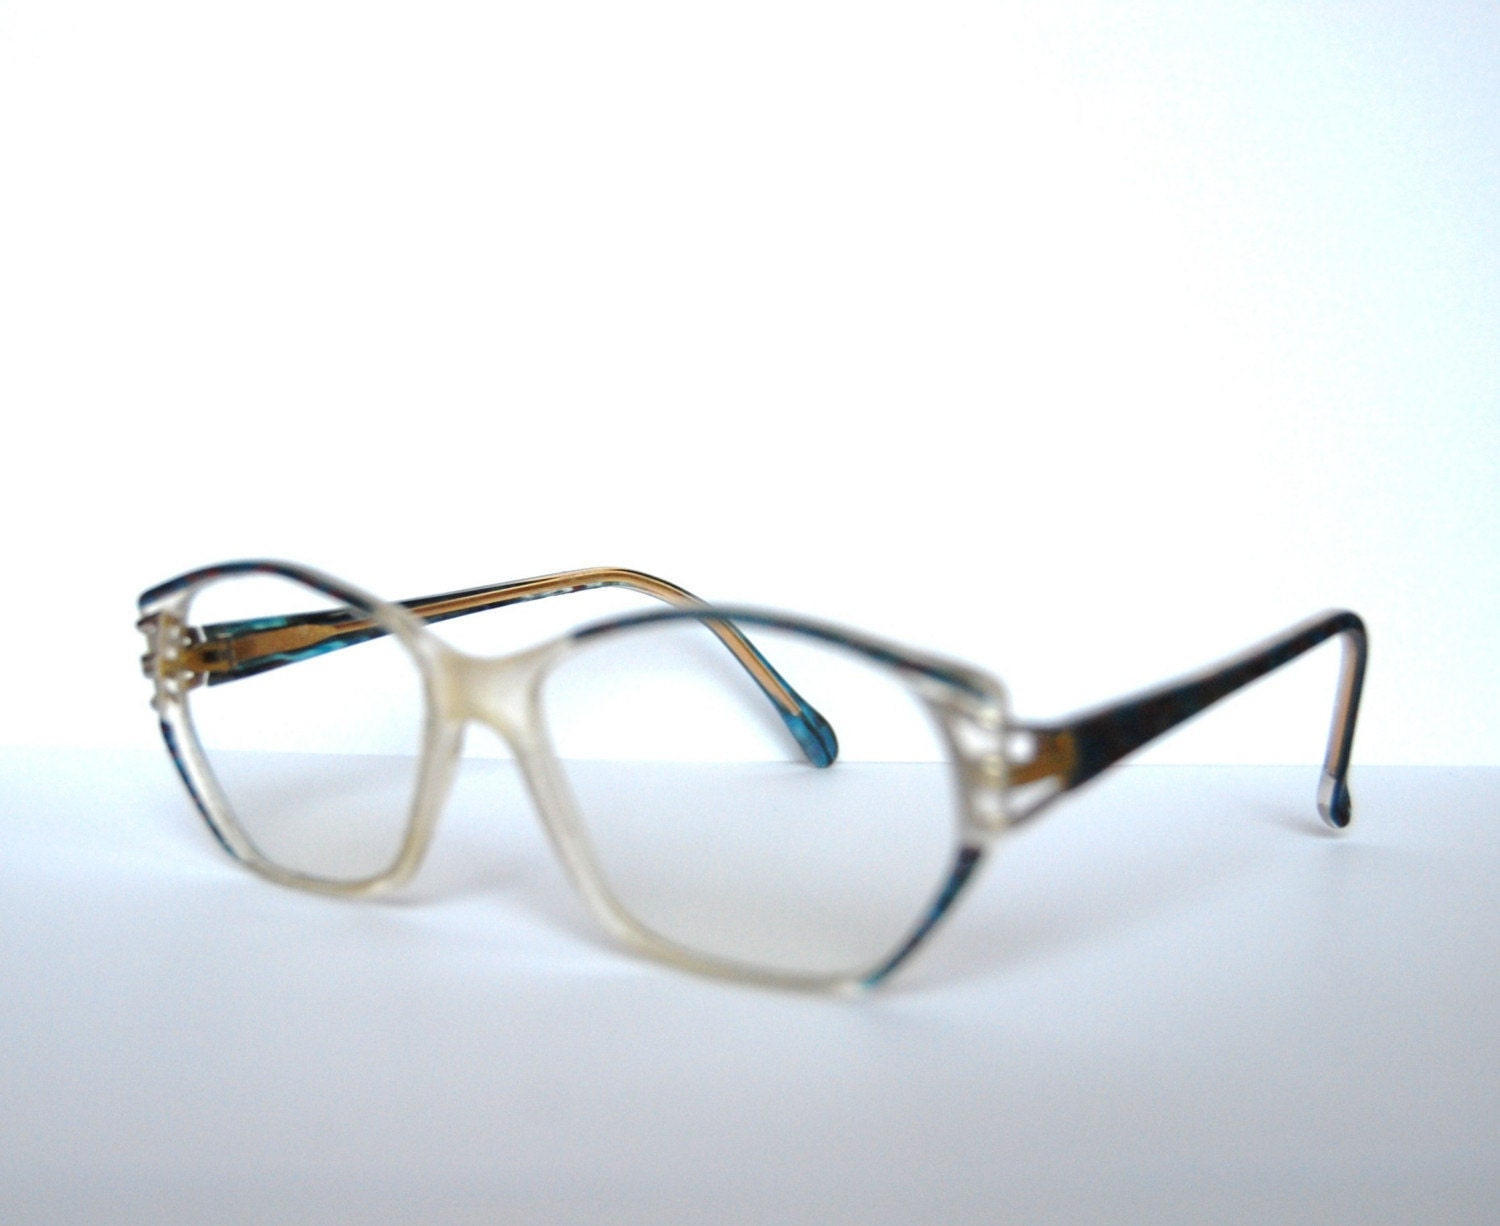 Vintage eyeglasses spectacles Germany by RetroEyewear on Etsy from etsy.com